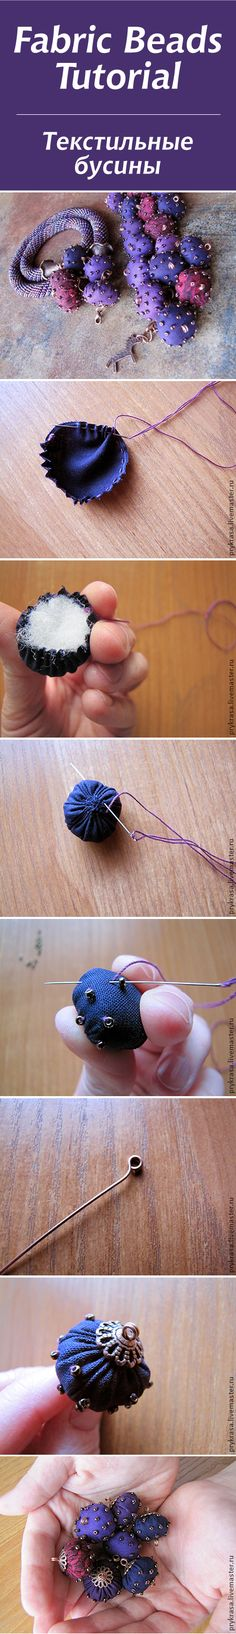 tutorial fabric beads